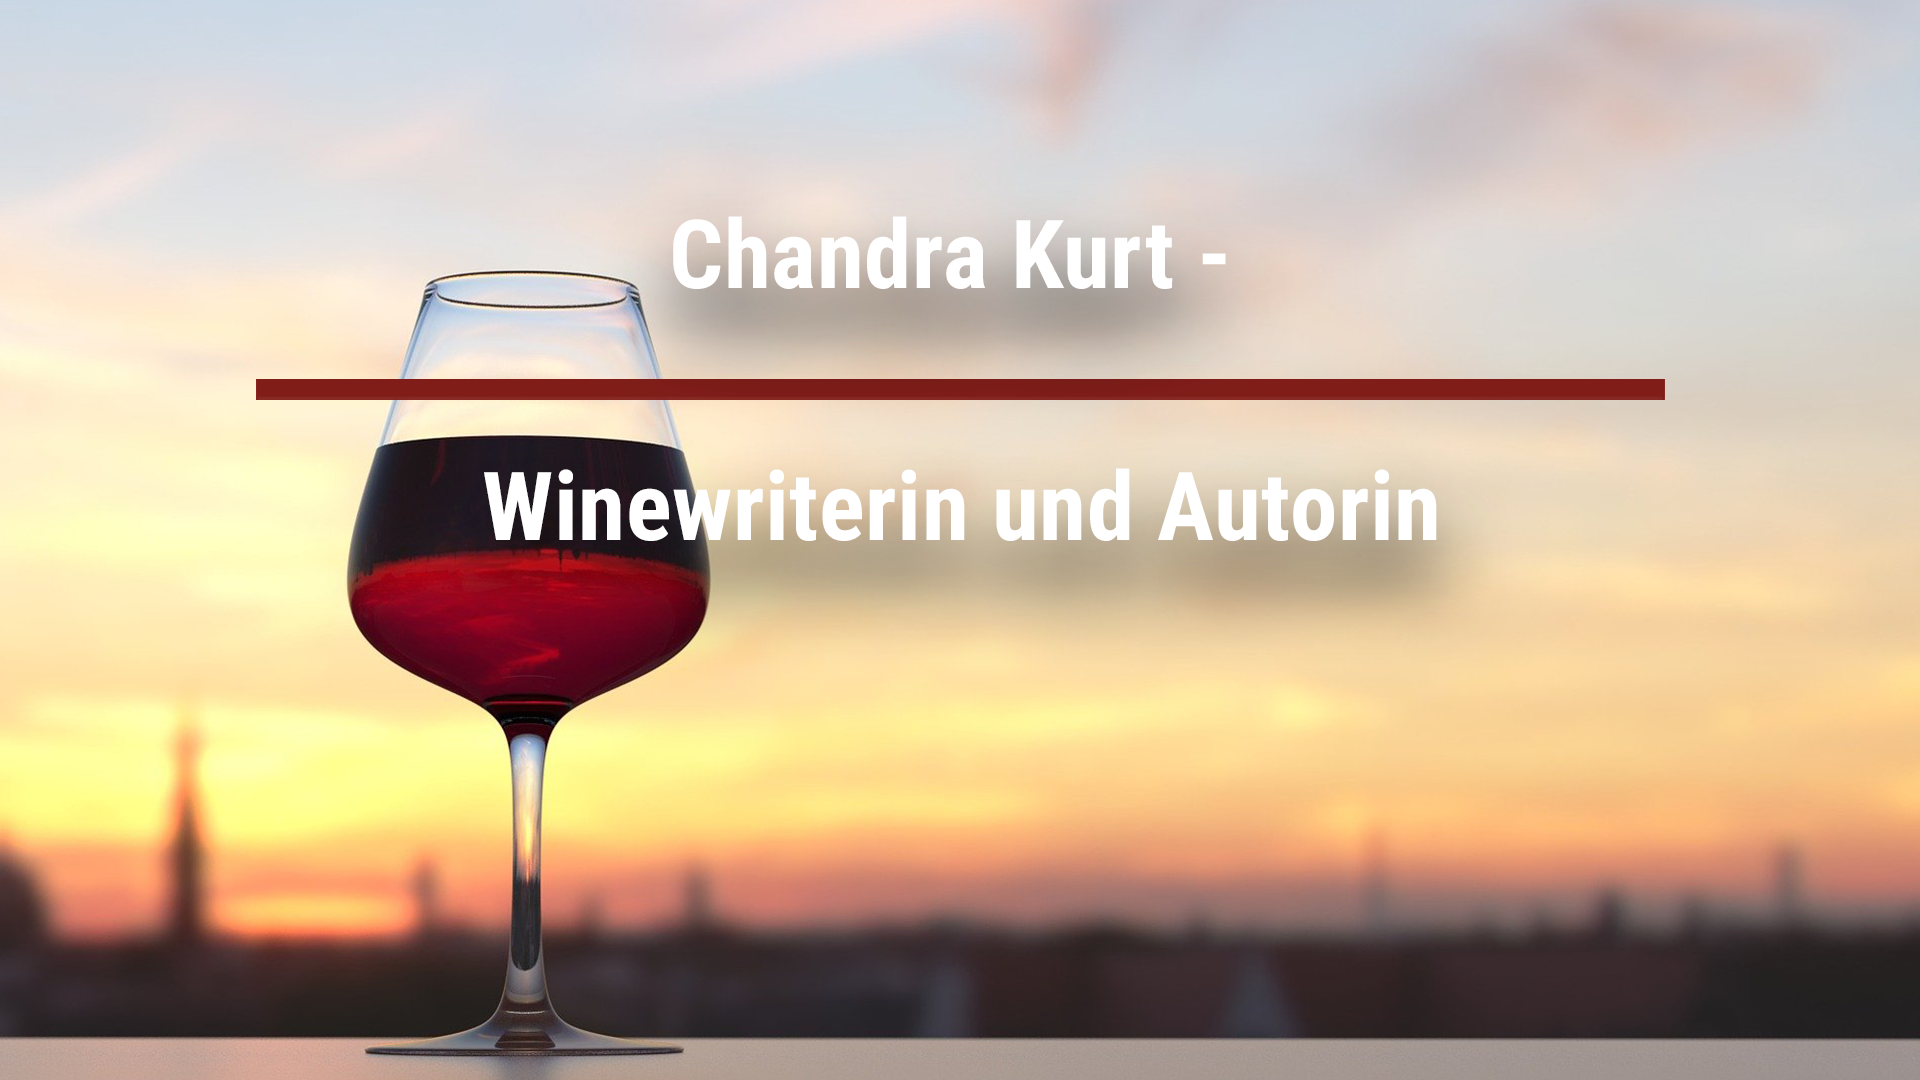 Chandra Kurt – Winewriterin und Autorin